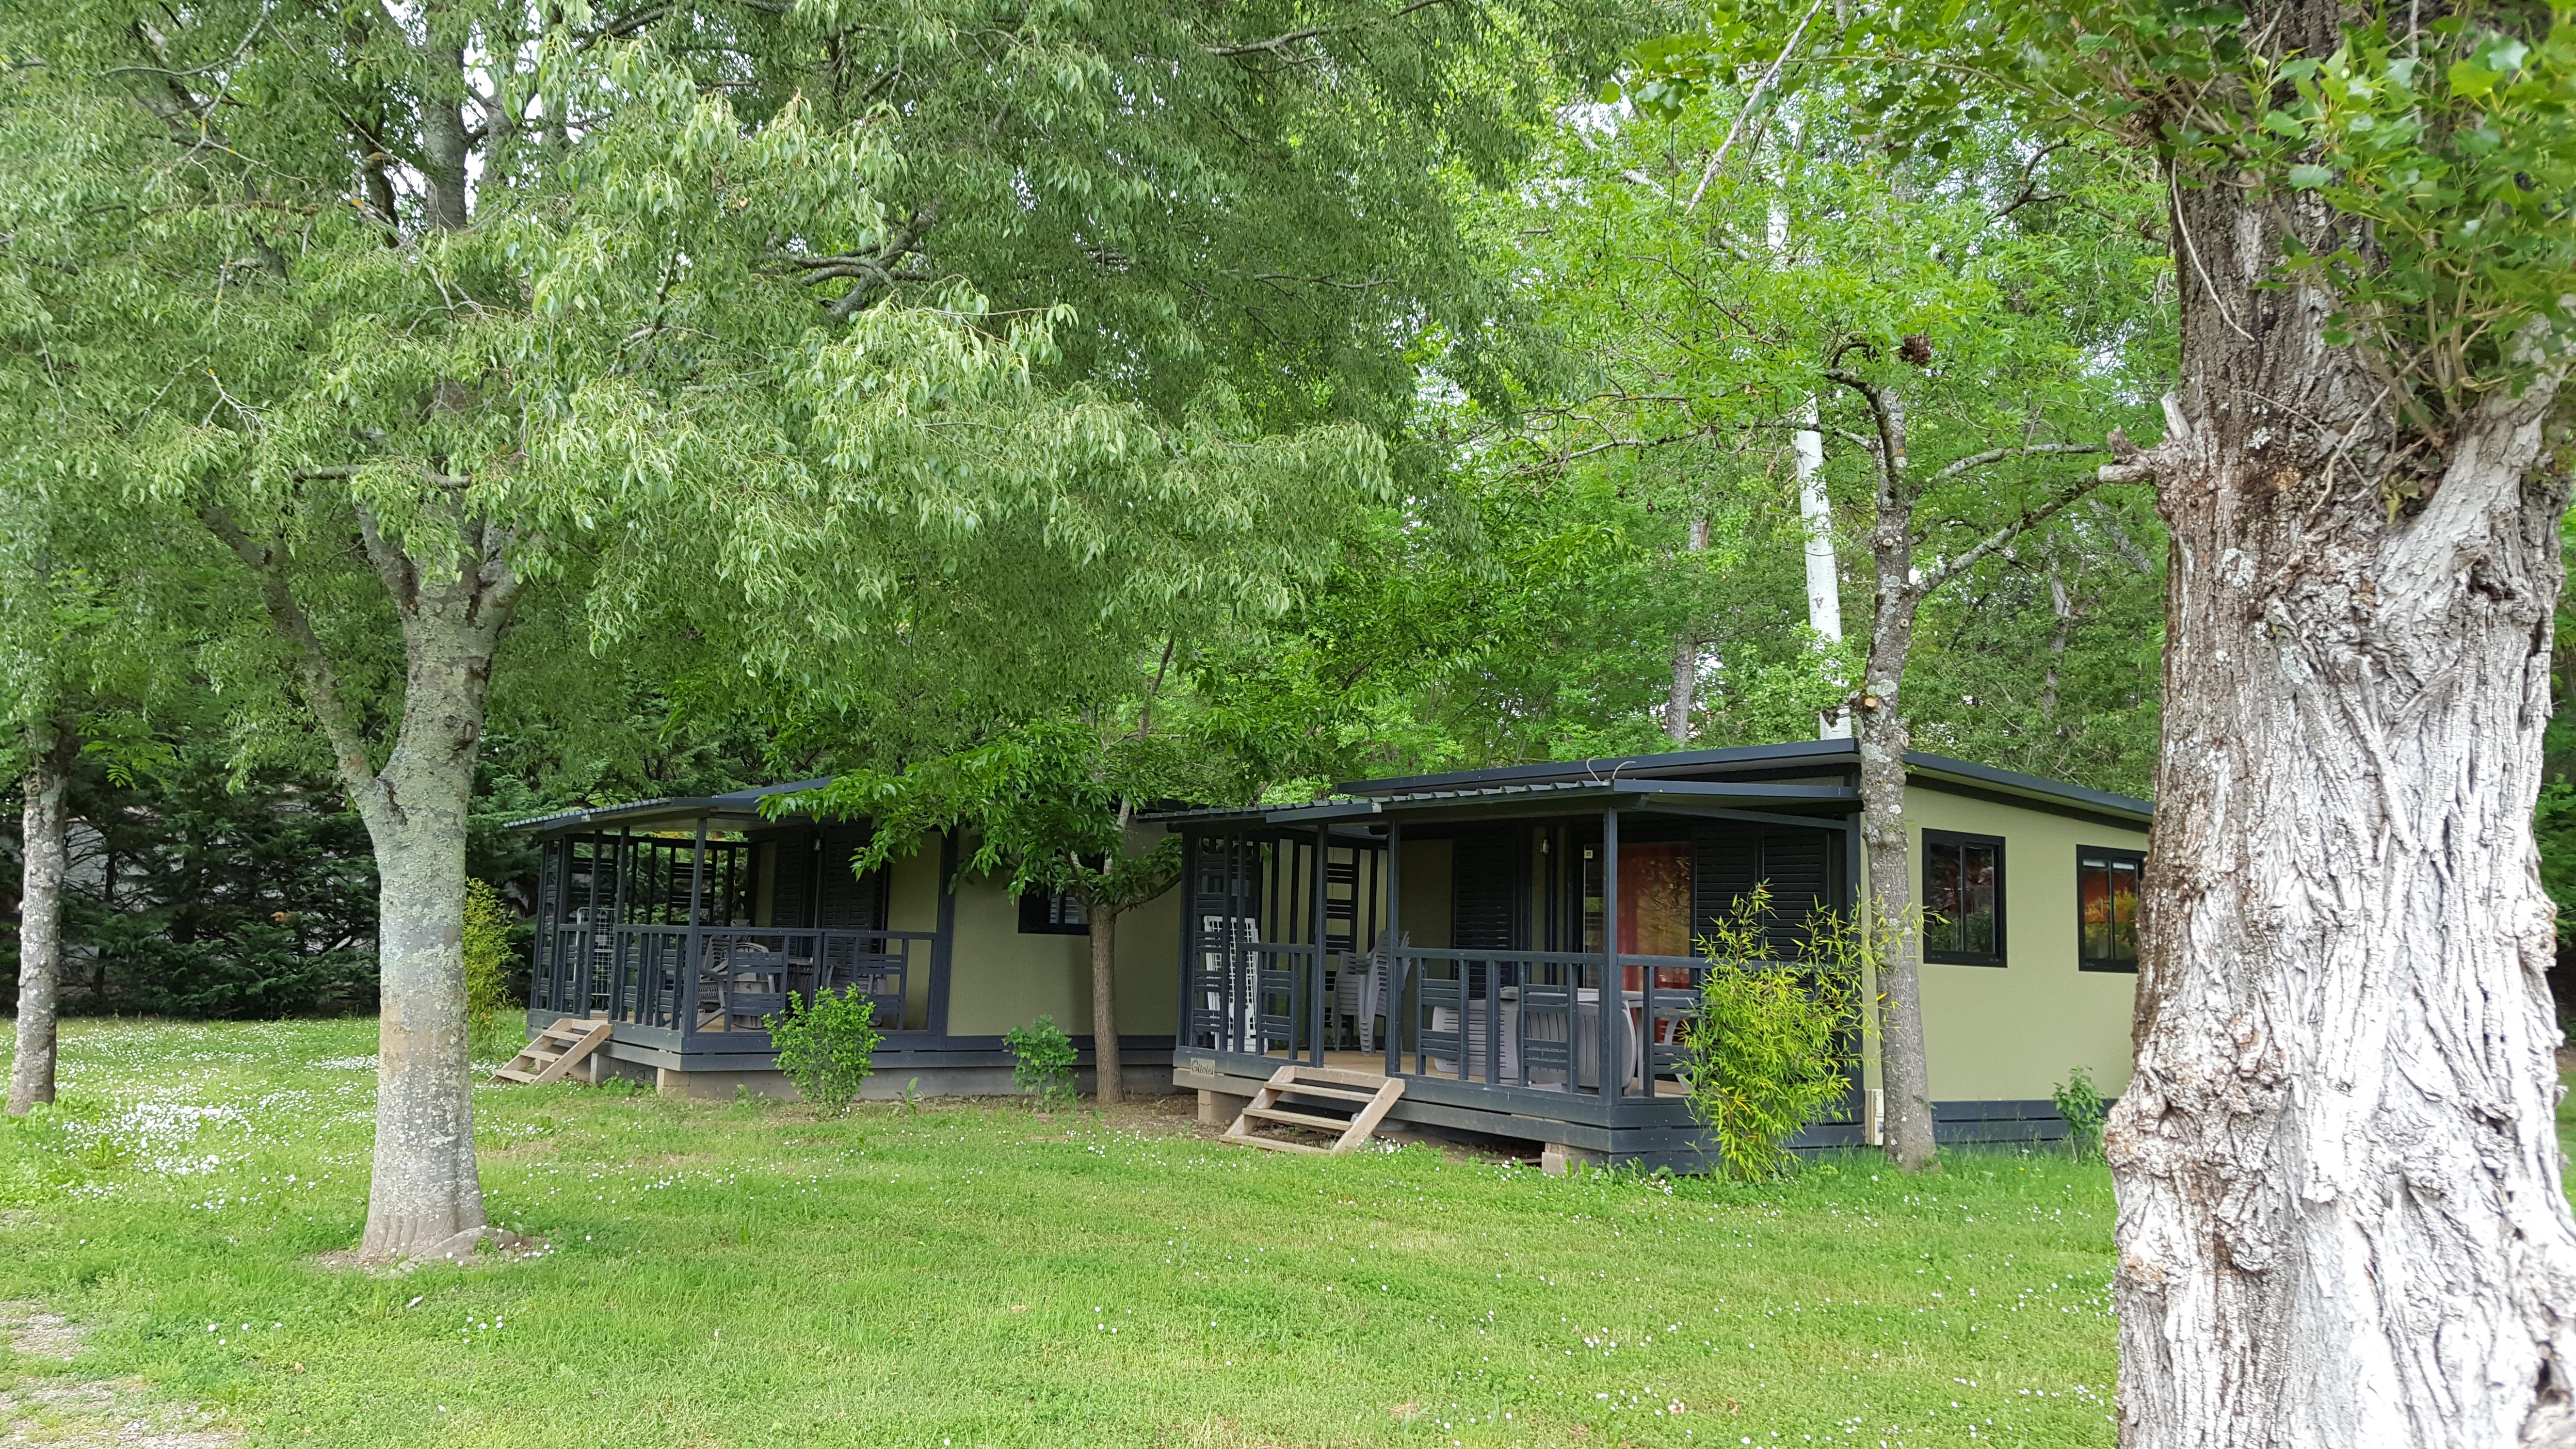 Accommodation - Chalet Confort 2 Bedrooms - Camping les Peupliers